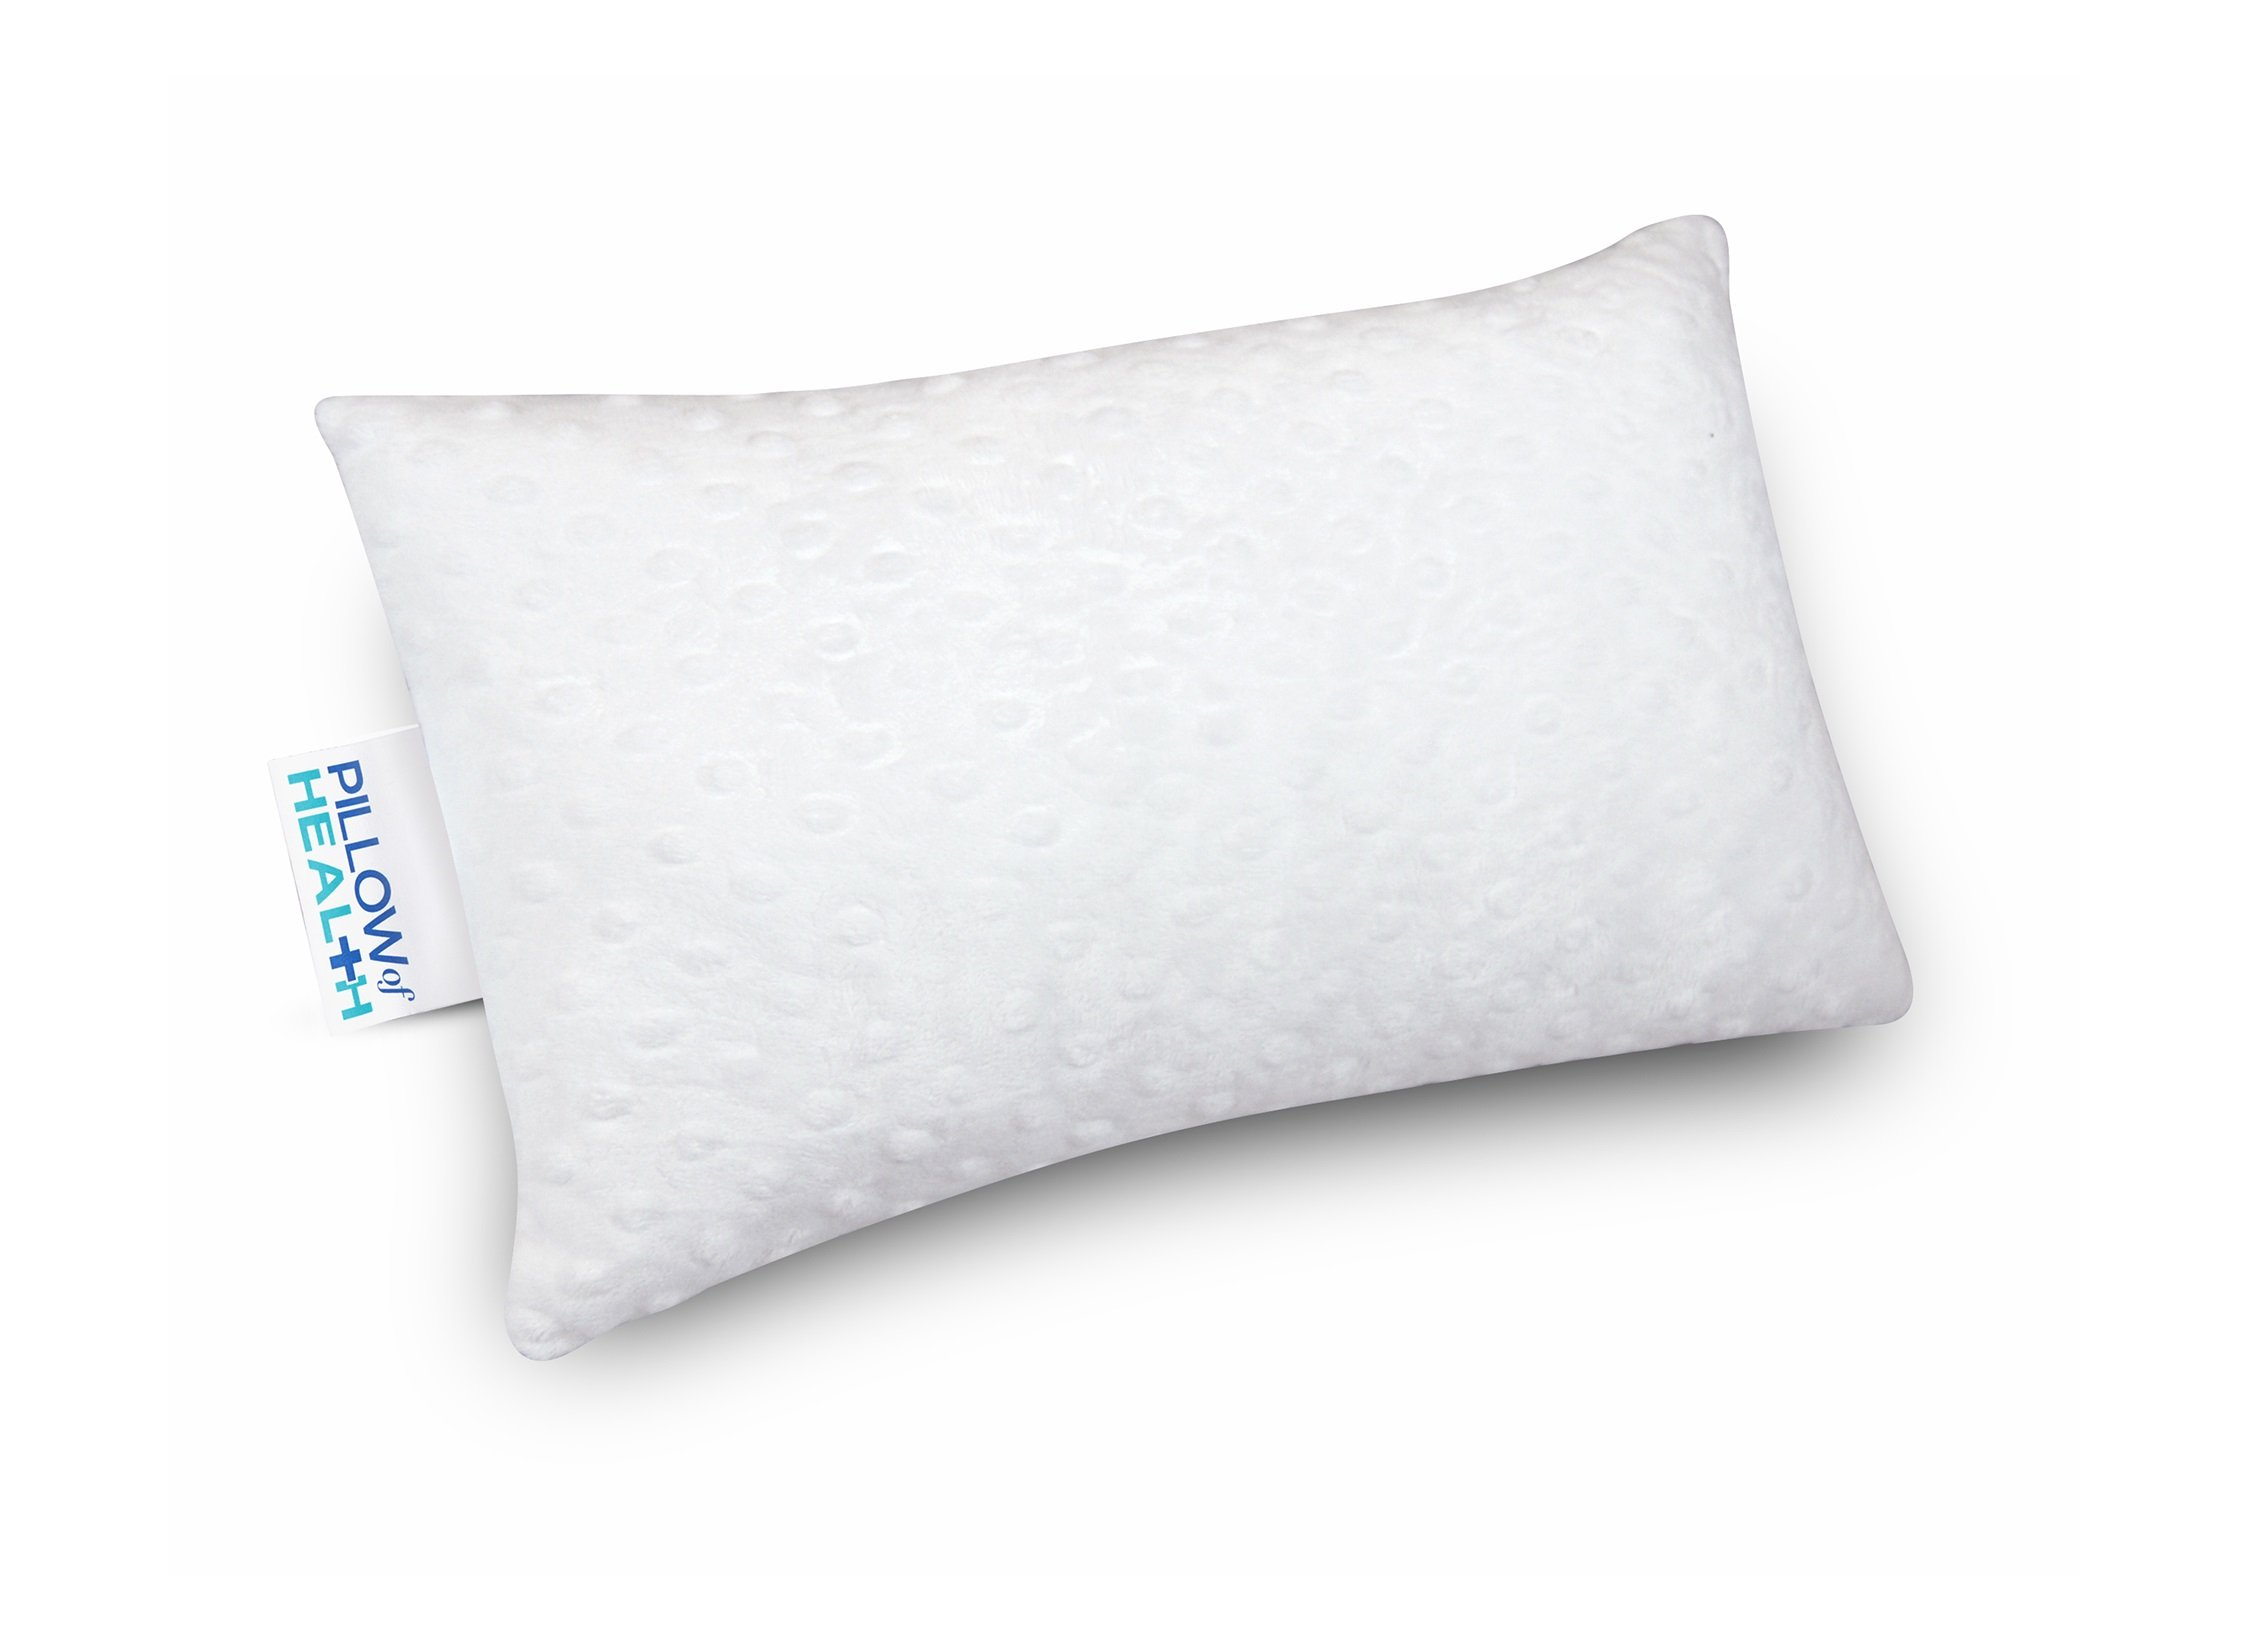 Pillow of Health Lumbar Pillow, 15 x 9 x 4 Inches, Ultrasoft Fleece Cover & Cooling Wickable Bottom, Hypoallergenic, Antimicrobial, Dust Mite Resistant, Certi-Pur Foam & OptiAir Fill